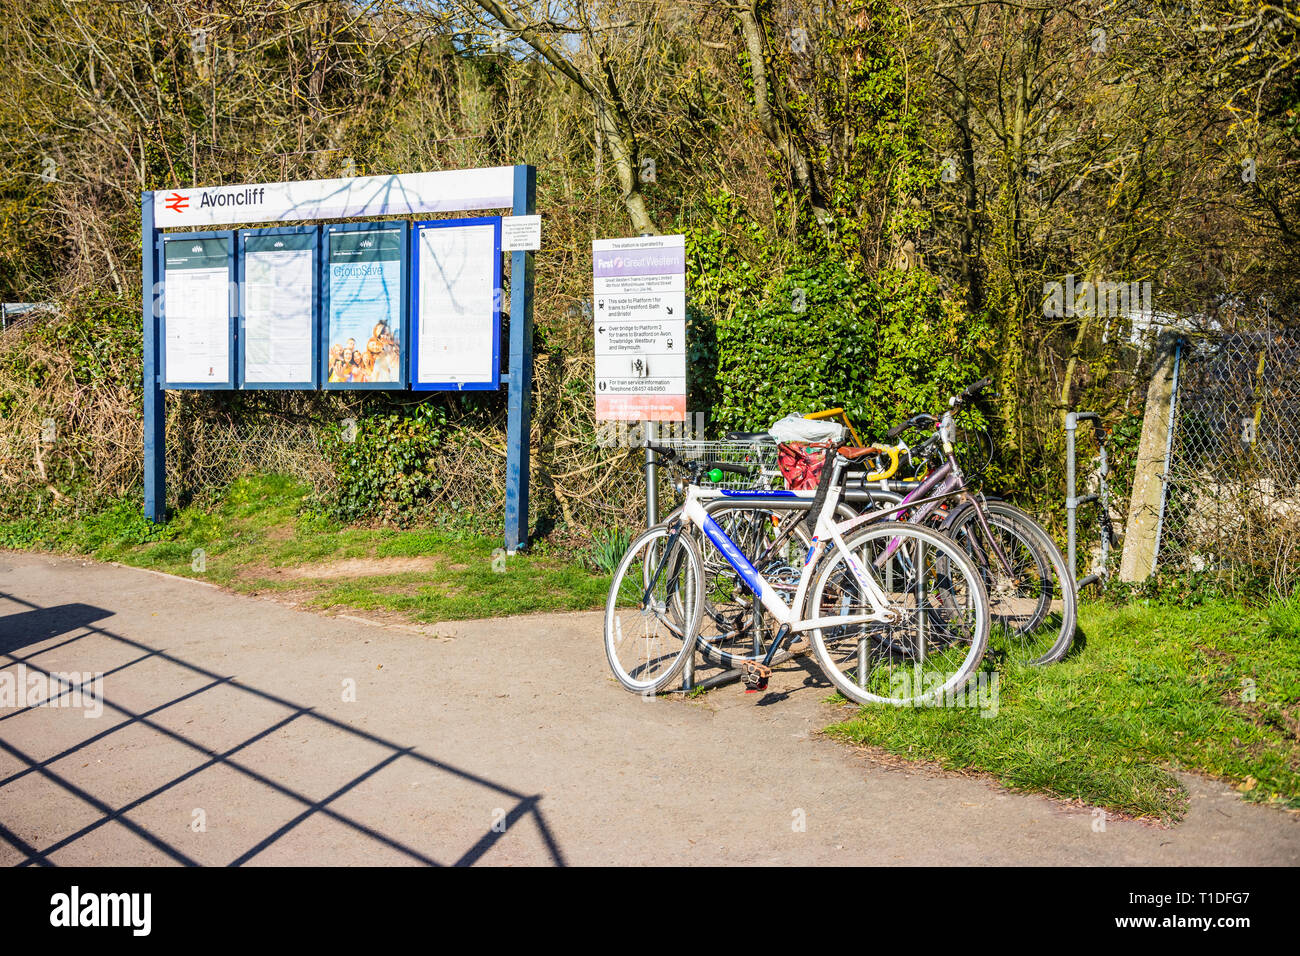 An entrance to Avoncliff railway station with a notice board and several bicycles secured to a metal railing Stock Photo